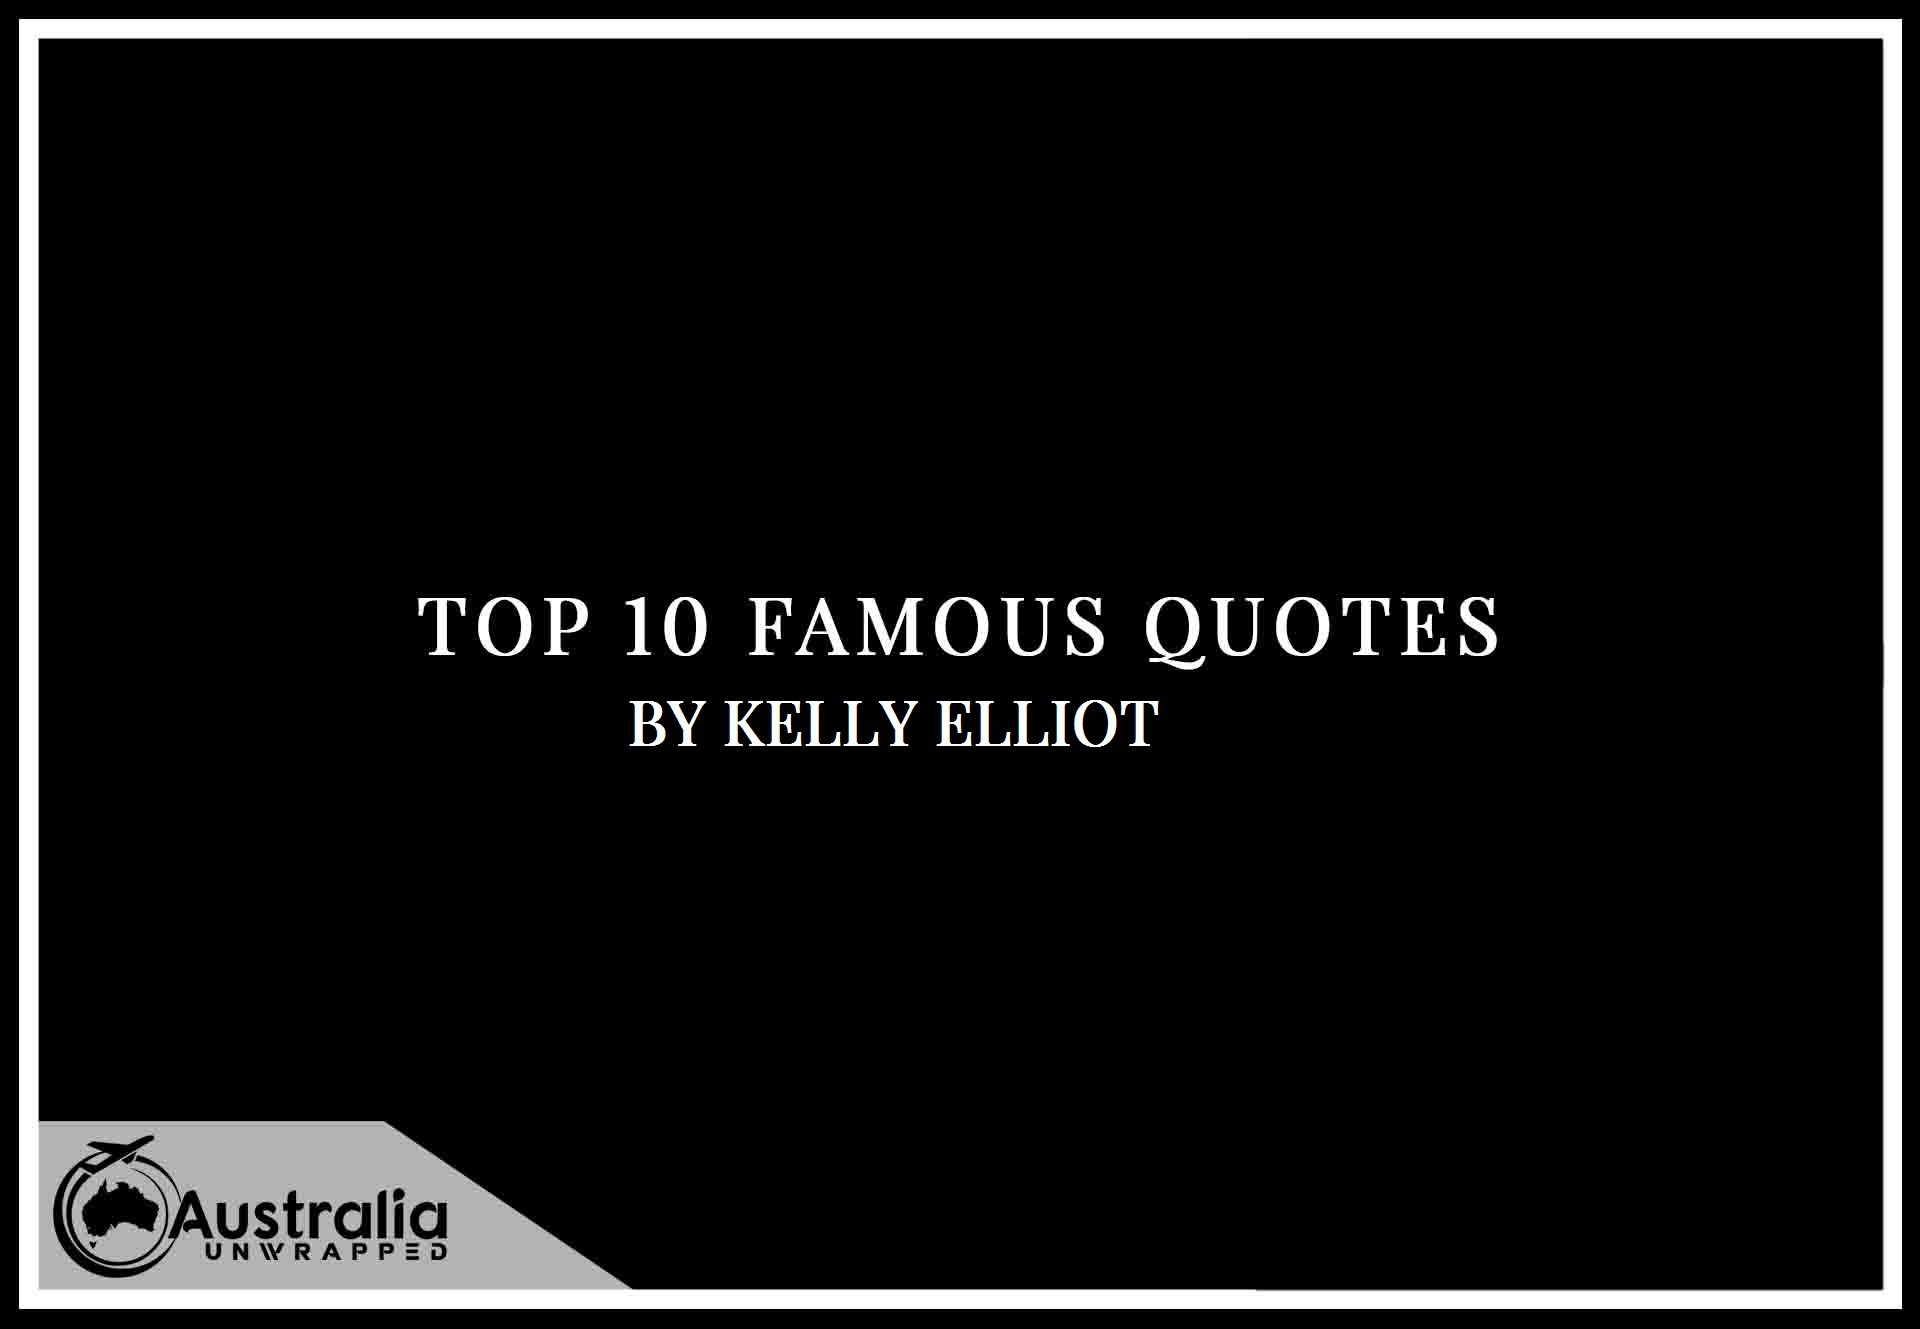 Kelly Elliott's Top 10 Popular and Famous Quotes